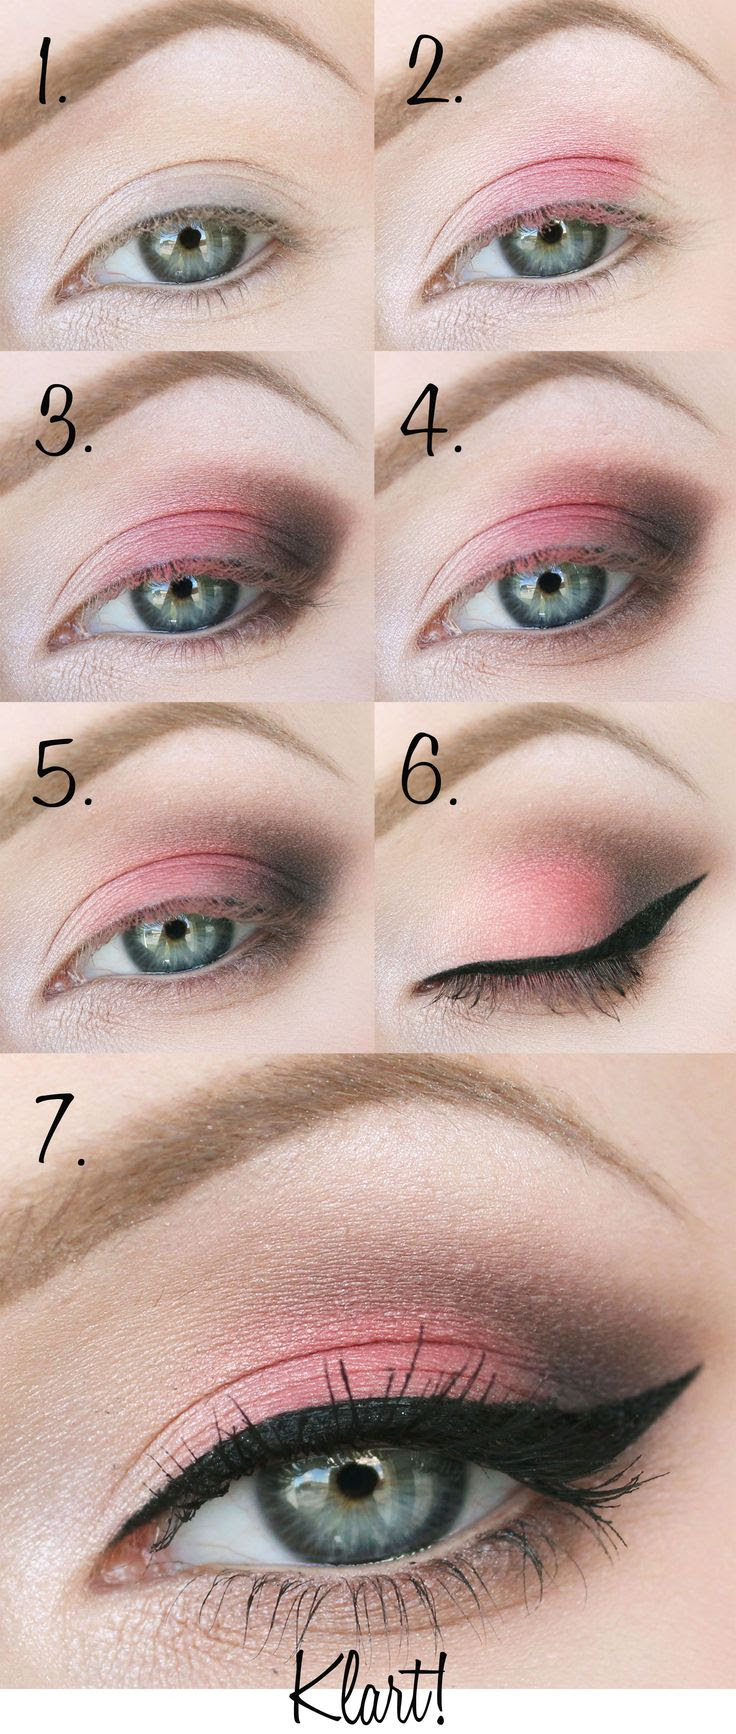 Step-by-step tutorial by beauty blogger Helena Rönnblad using shade 4 of Blueberry Longwear Eyeshadow Palette. #eyeshadow #tutorial #lumene